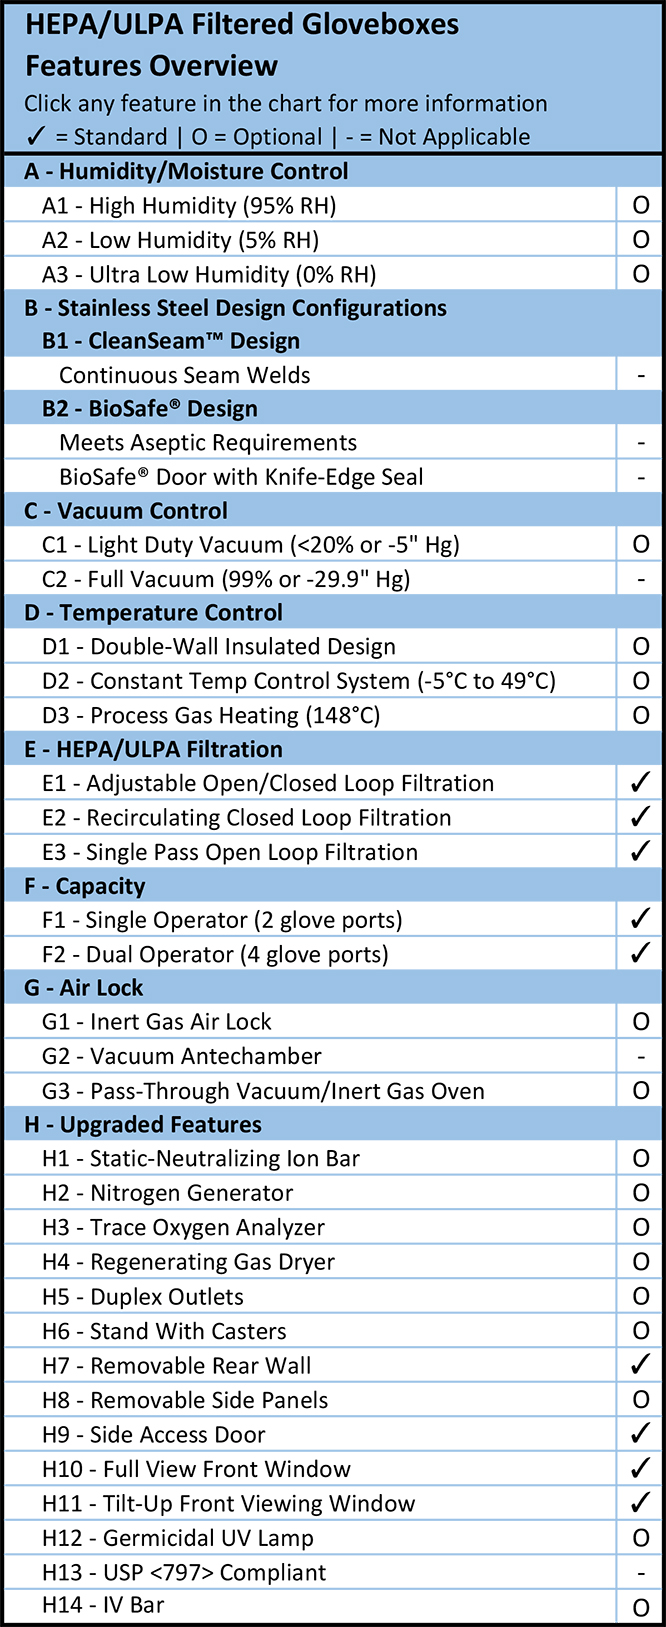 HEPA/ULPA Filtered Gloveboxes Features Overview